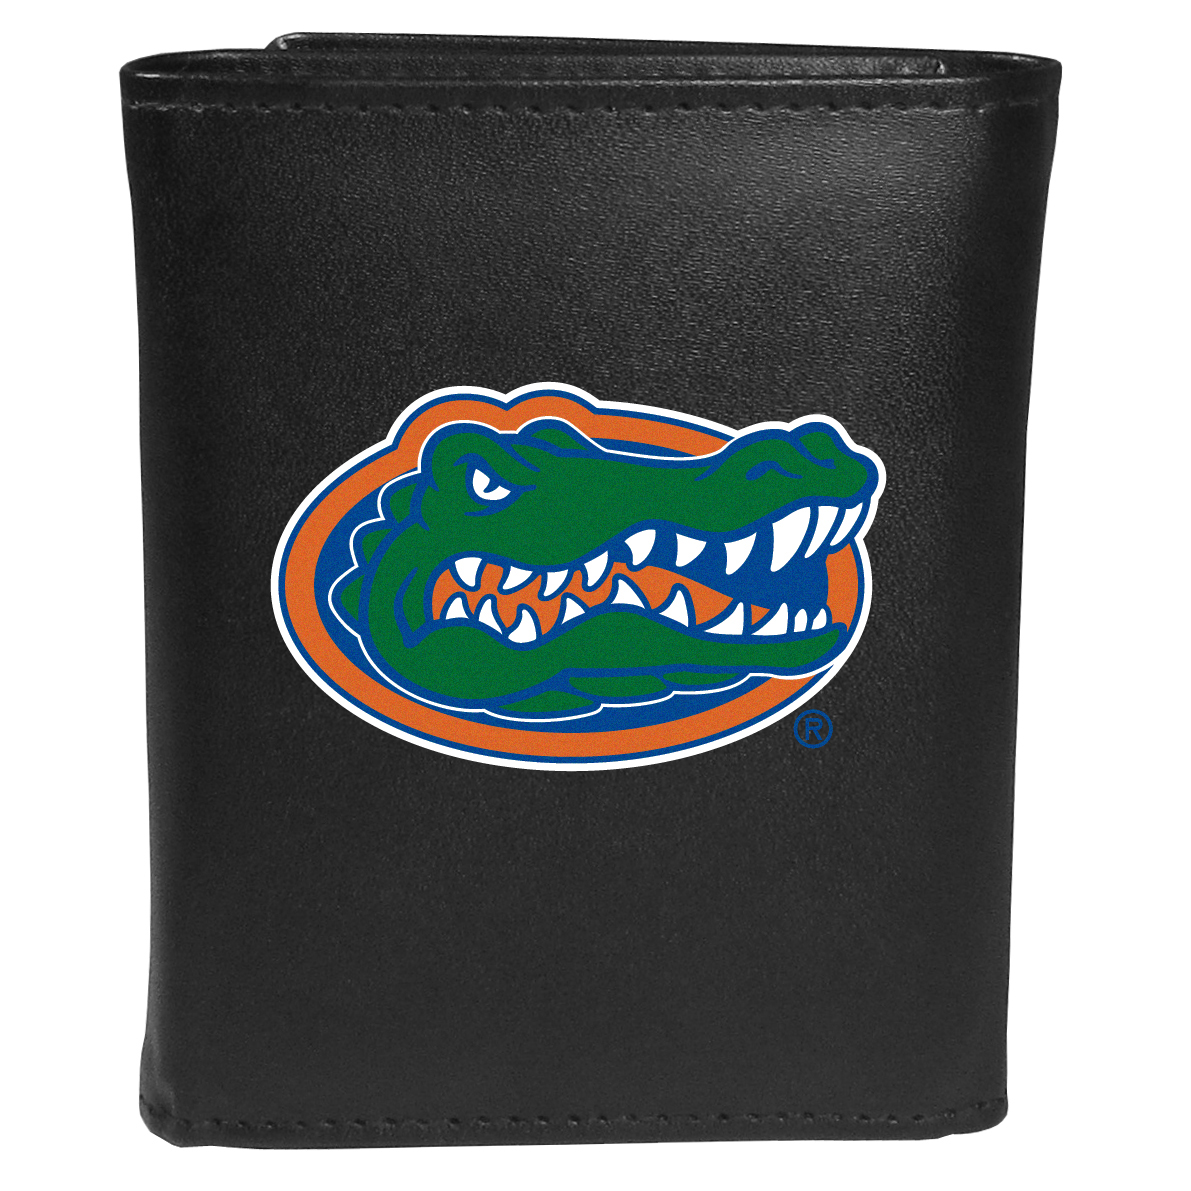 Florida Gators Tri-fold Wallet Large Logo - Sports fans do not have to sacrifice style with this classic tri-fold wallet that sports theFlorida Gators?extra large logo. This men's fashion accessory has a leather grain look and expert craftmanship for a quality wallet at a great price. The wallet features inner credit card slots, windowed ID slot and a large billfold pocket. The front of the wallet features an extra large printed team logo.